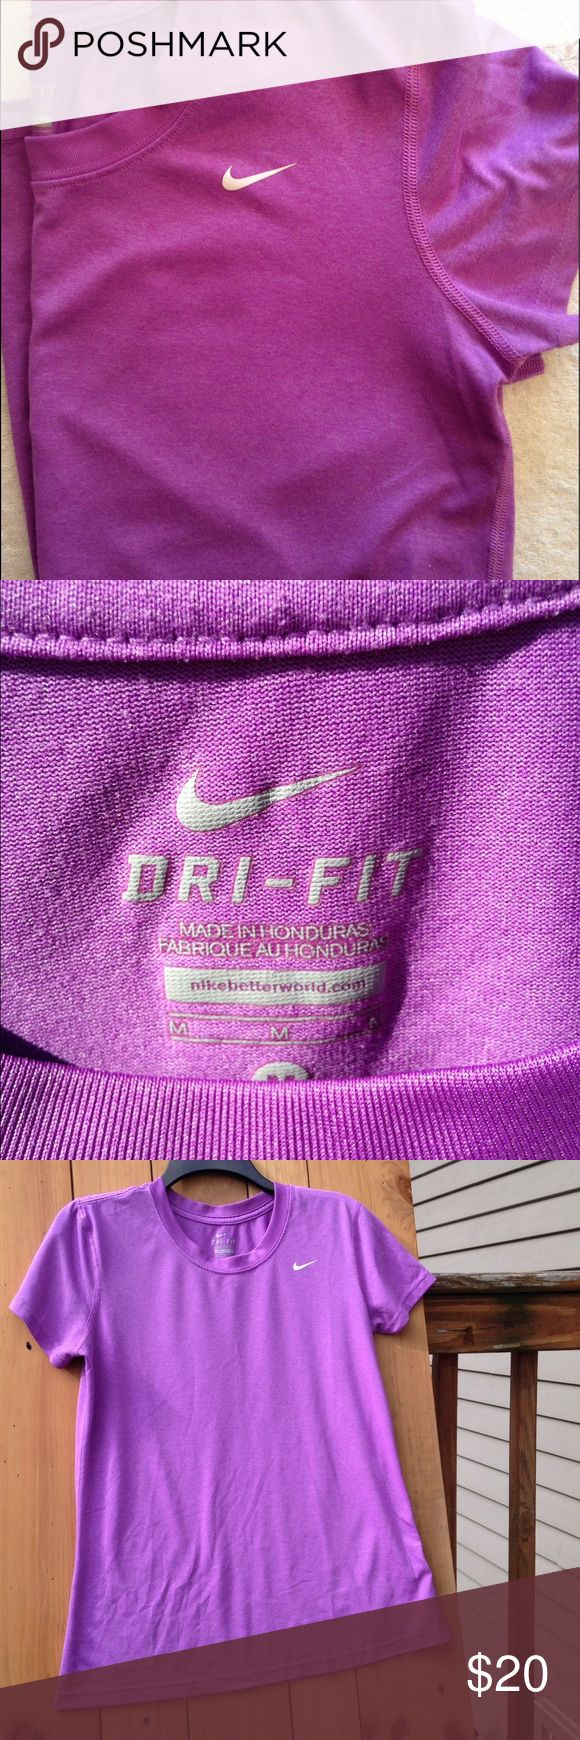 Nike dri fit Women's tee Condition Like New! Women's size Med Nike dri-fit tee in purple. Super cute and in great condition without any defects. Nike Tops Tees - Short Sleeve